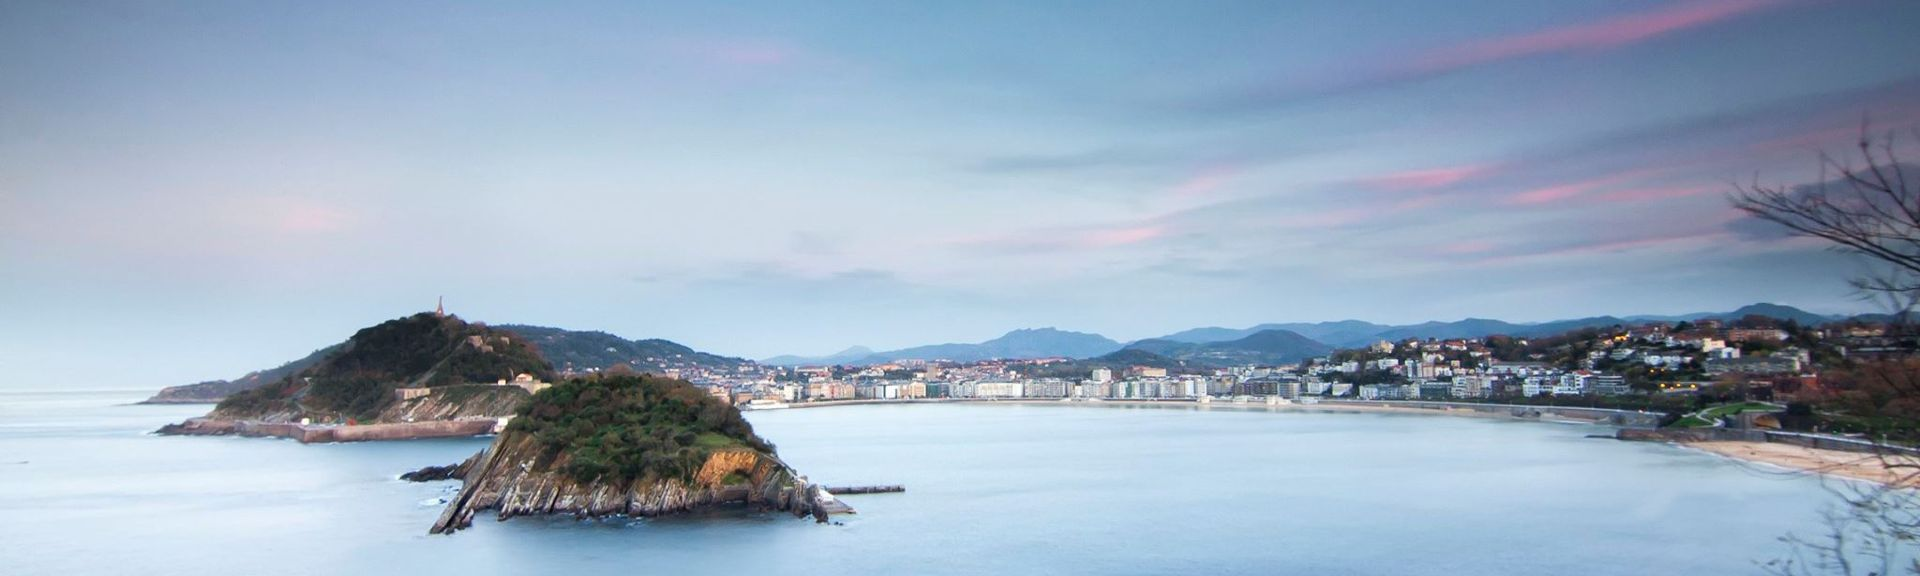 Getaria, Basque Country, Spain